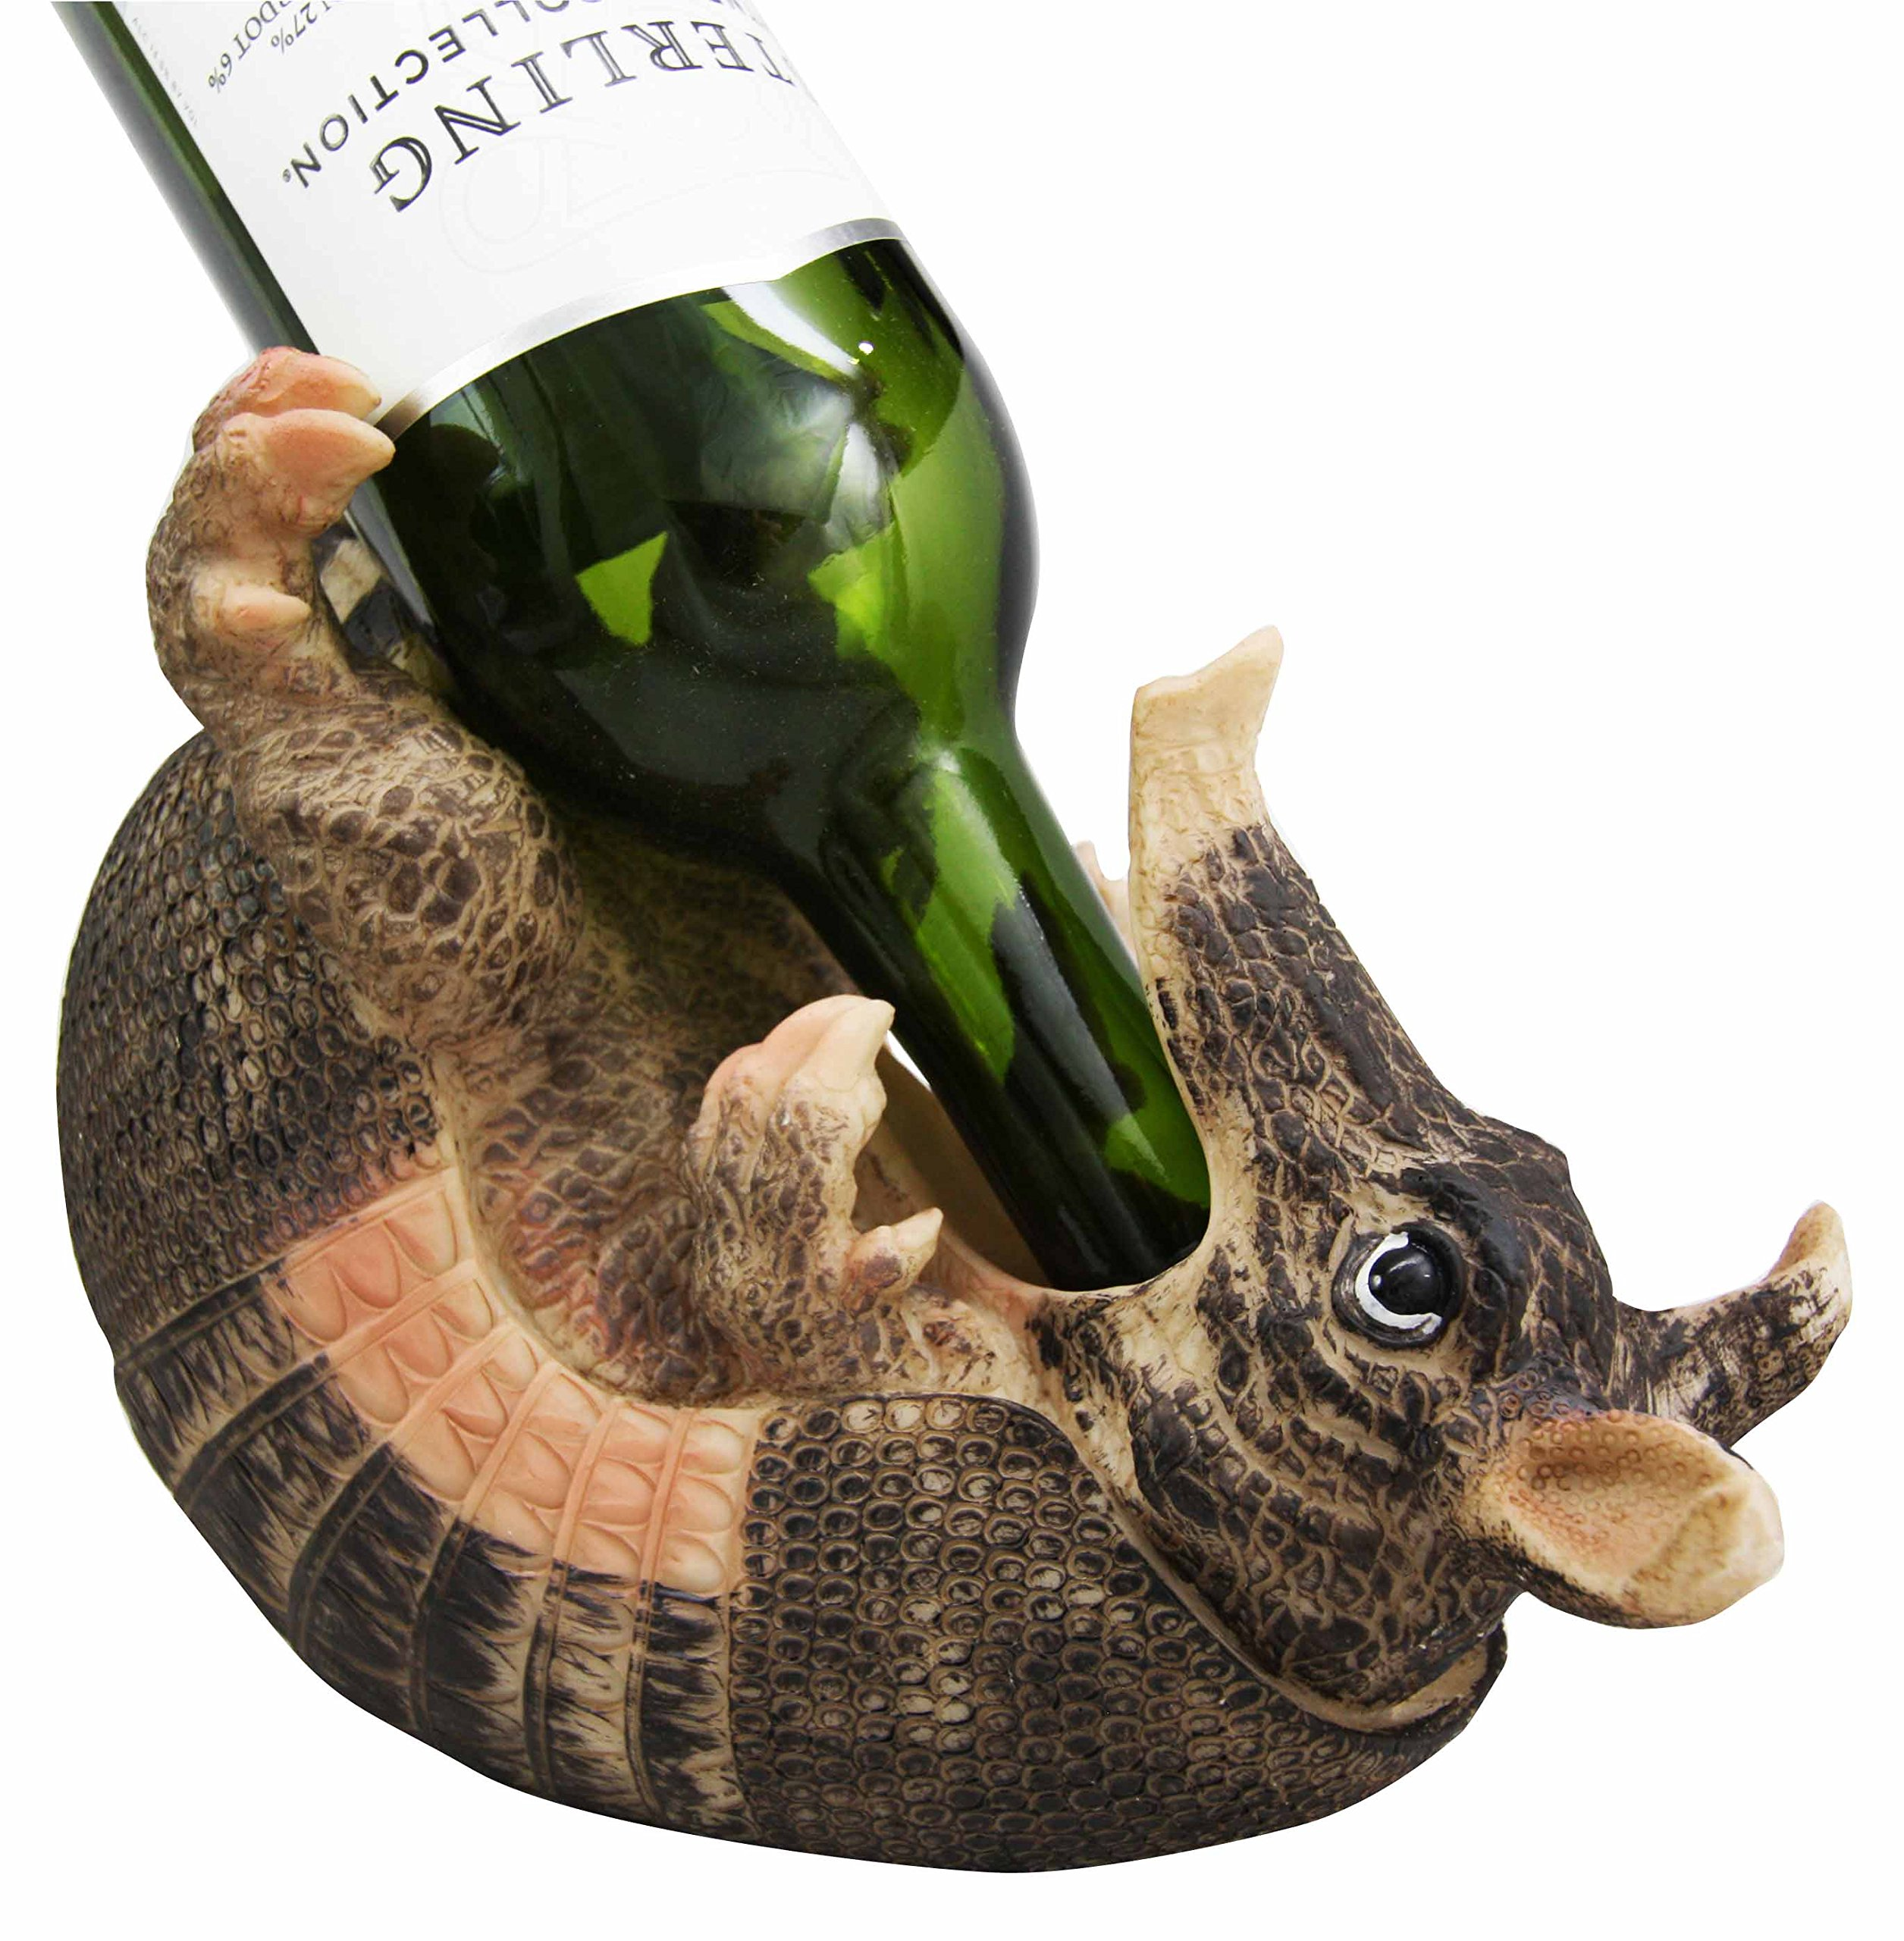 Coiled Wild Armadillo Guzzler 9.5'' Long Wine Bottle Holder Caddy Figurine